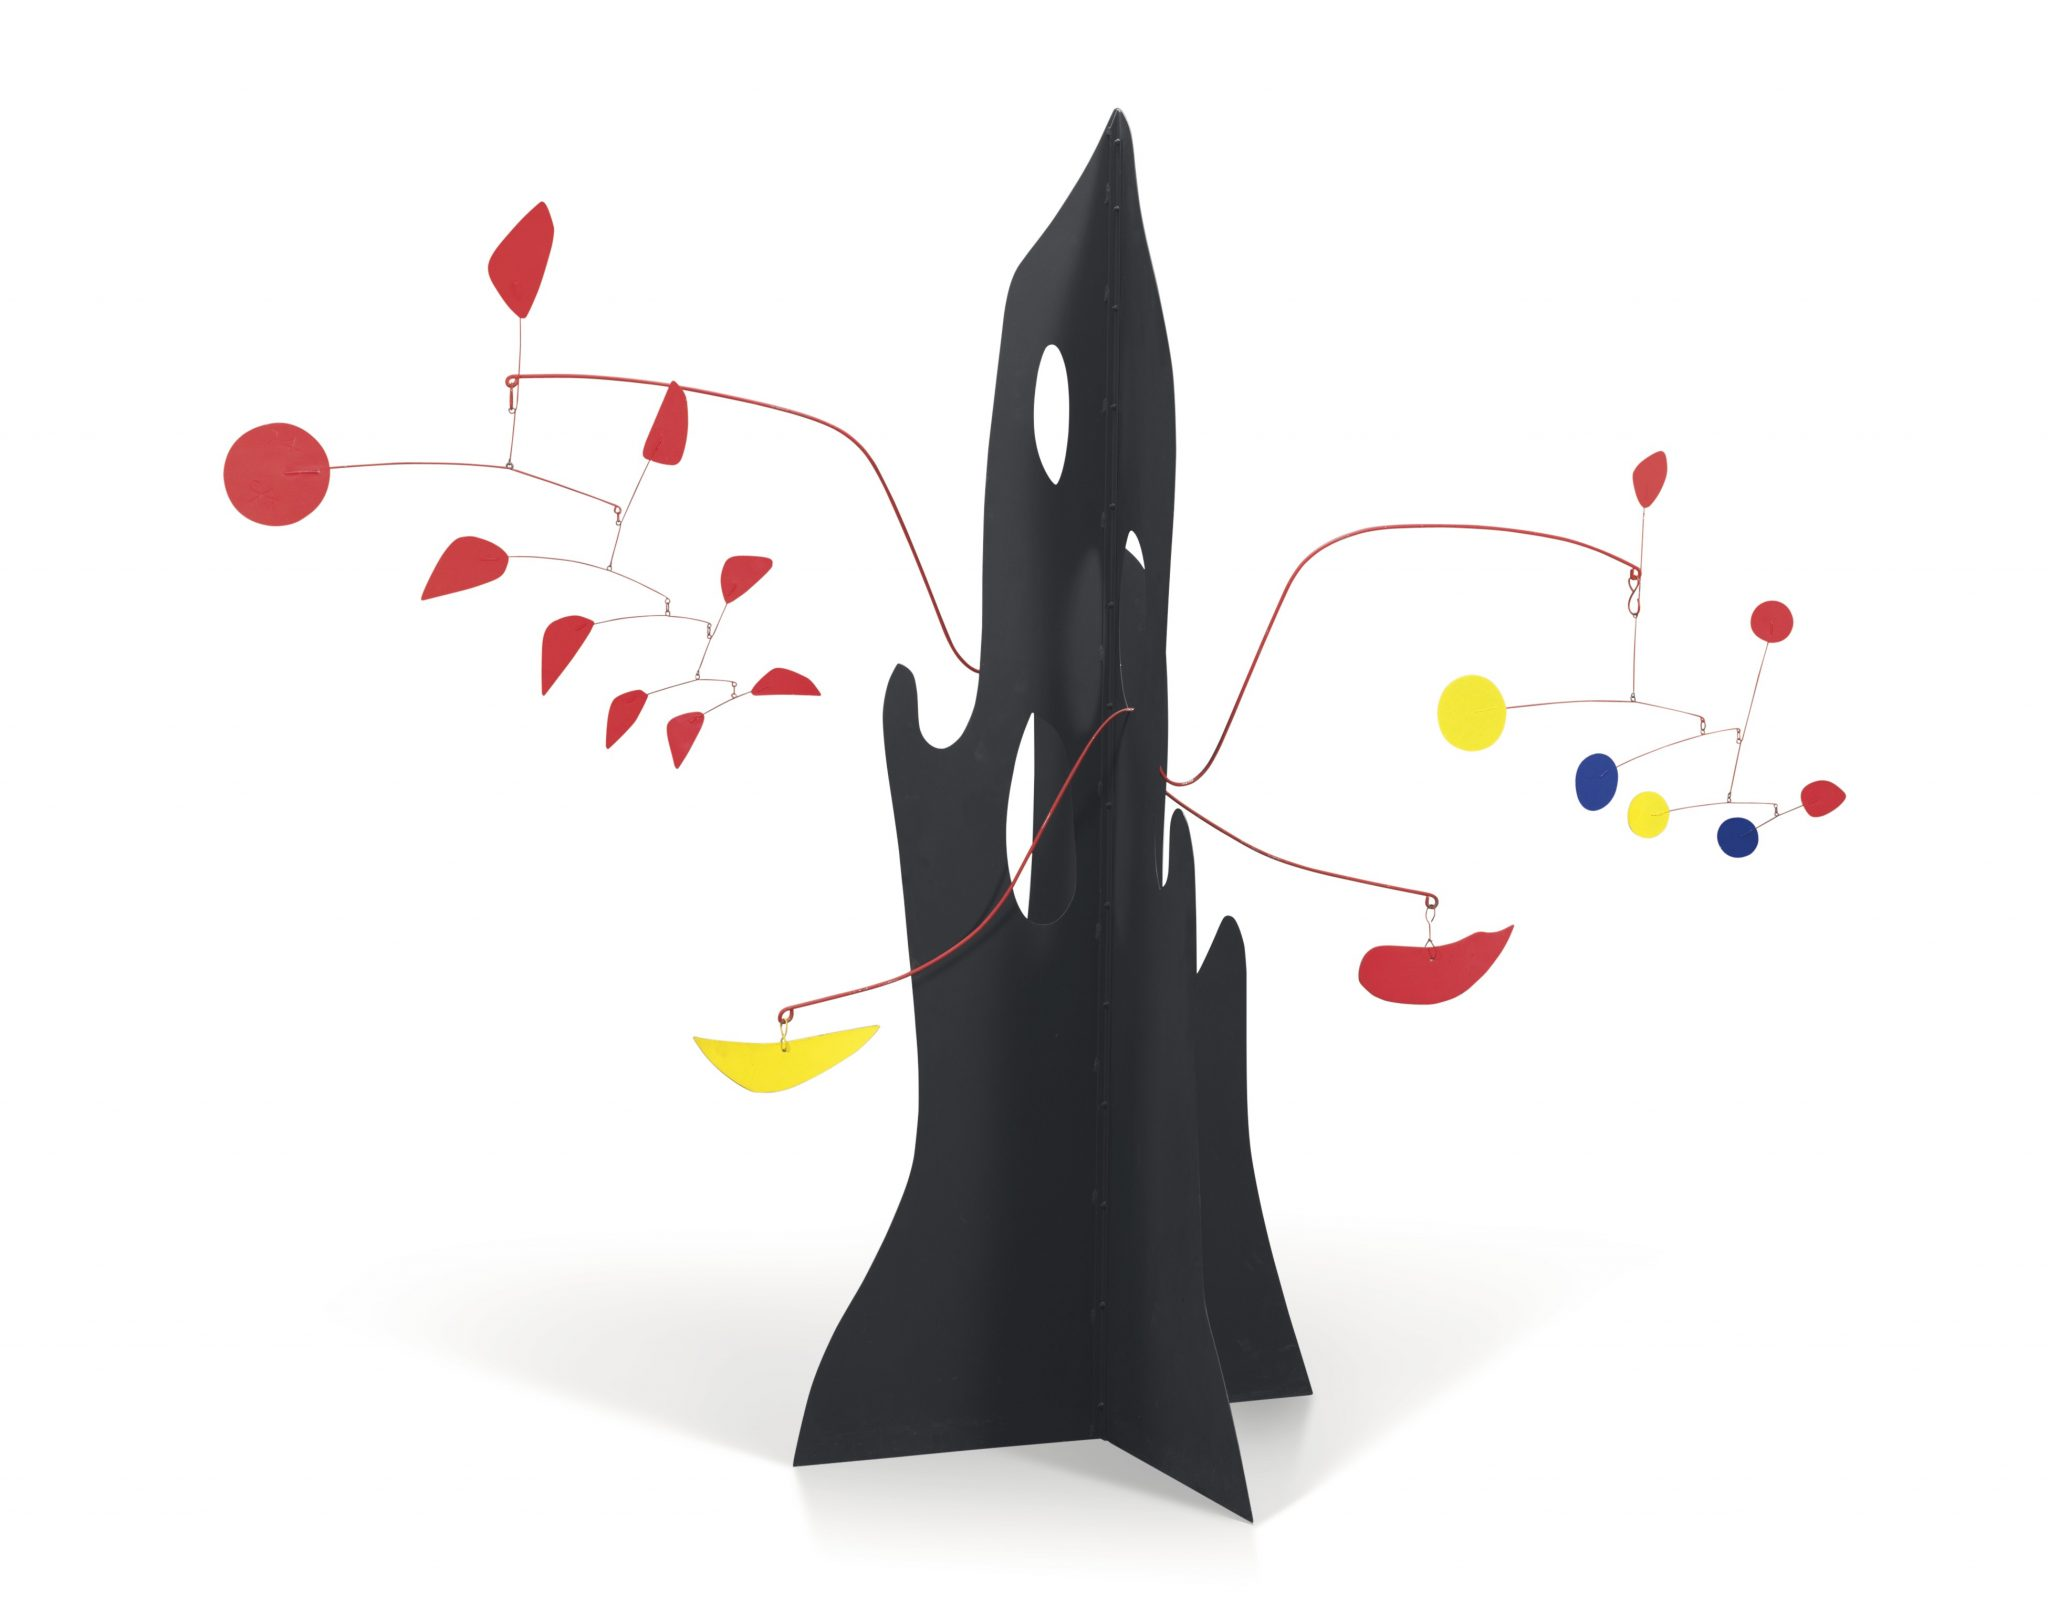 Alexander Calder, Crag with Yellow Boomerang and Red Eggplant, 1974, Láminas de metal pintado y alambre, 198.1 x 238.7 x 104.1cm, Pictures courtesy of Mayoral